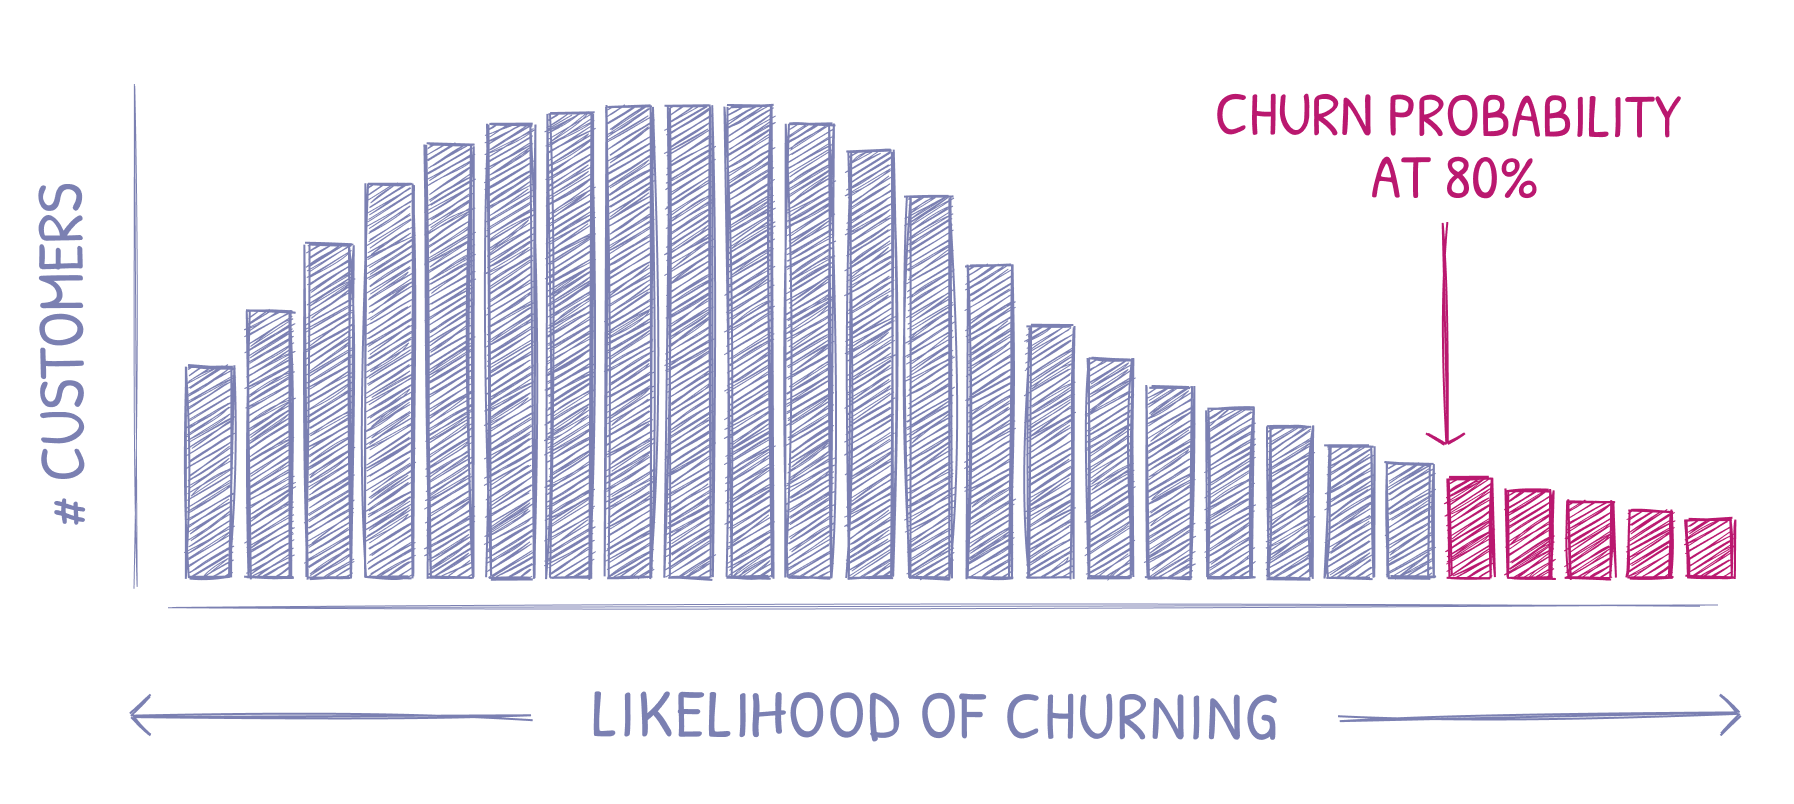 Likelihood of churn histogram